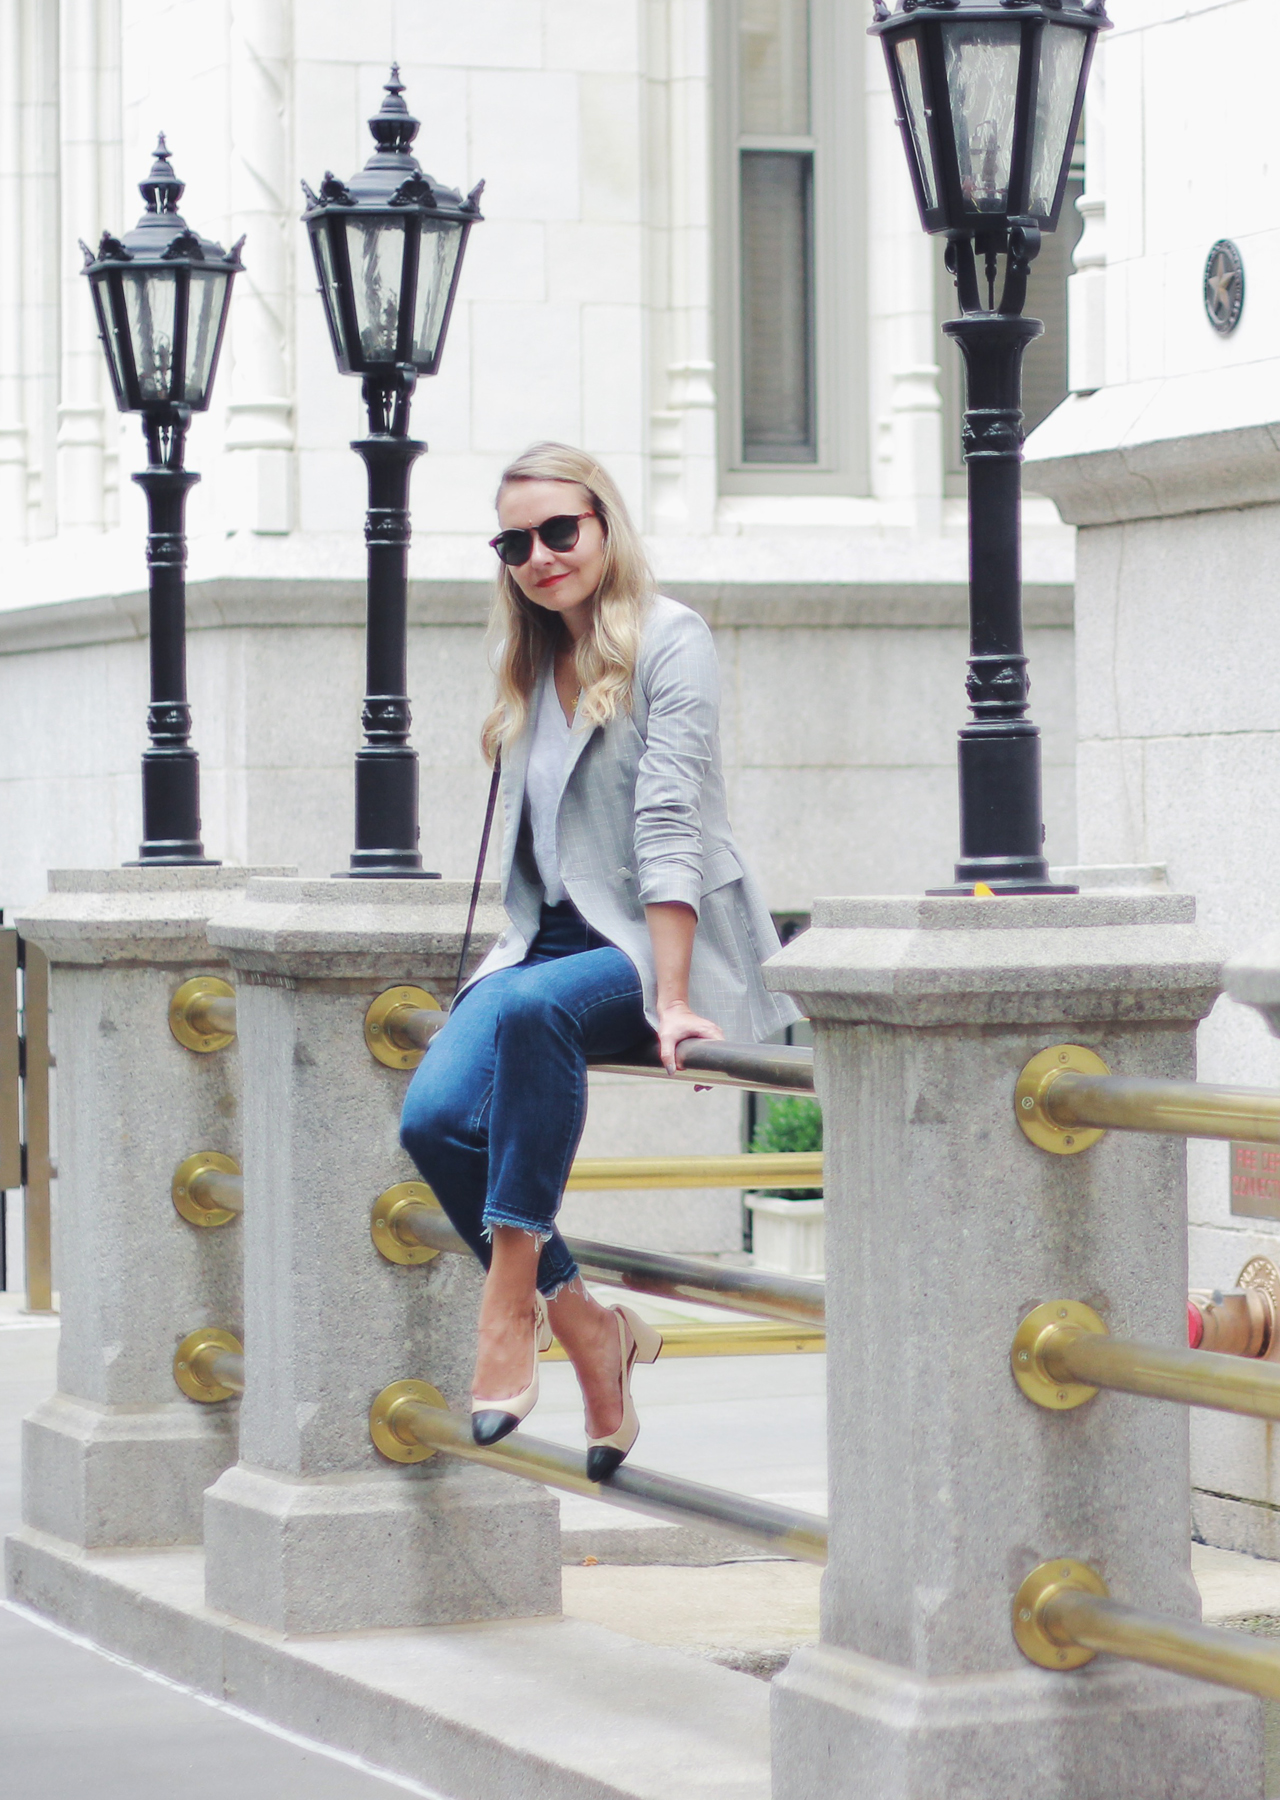 The Steele Maiden: Blazers and Denim - Casual Friday Outfit